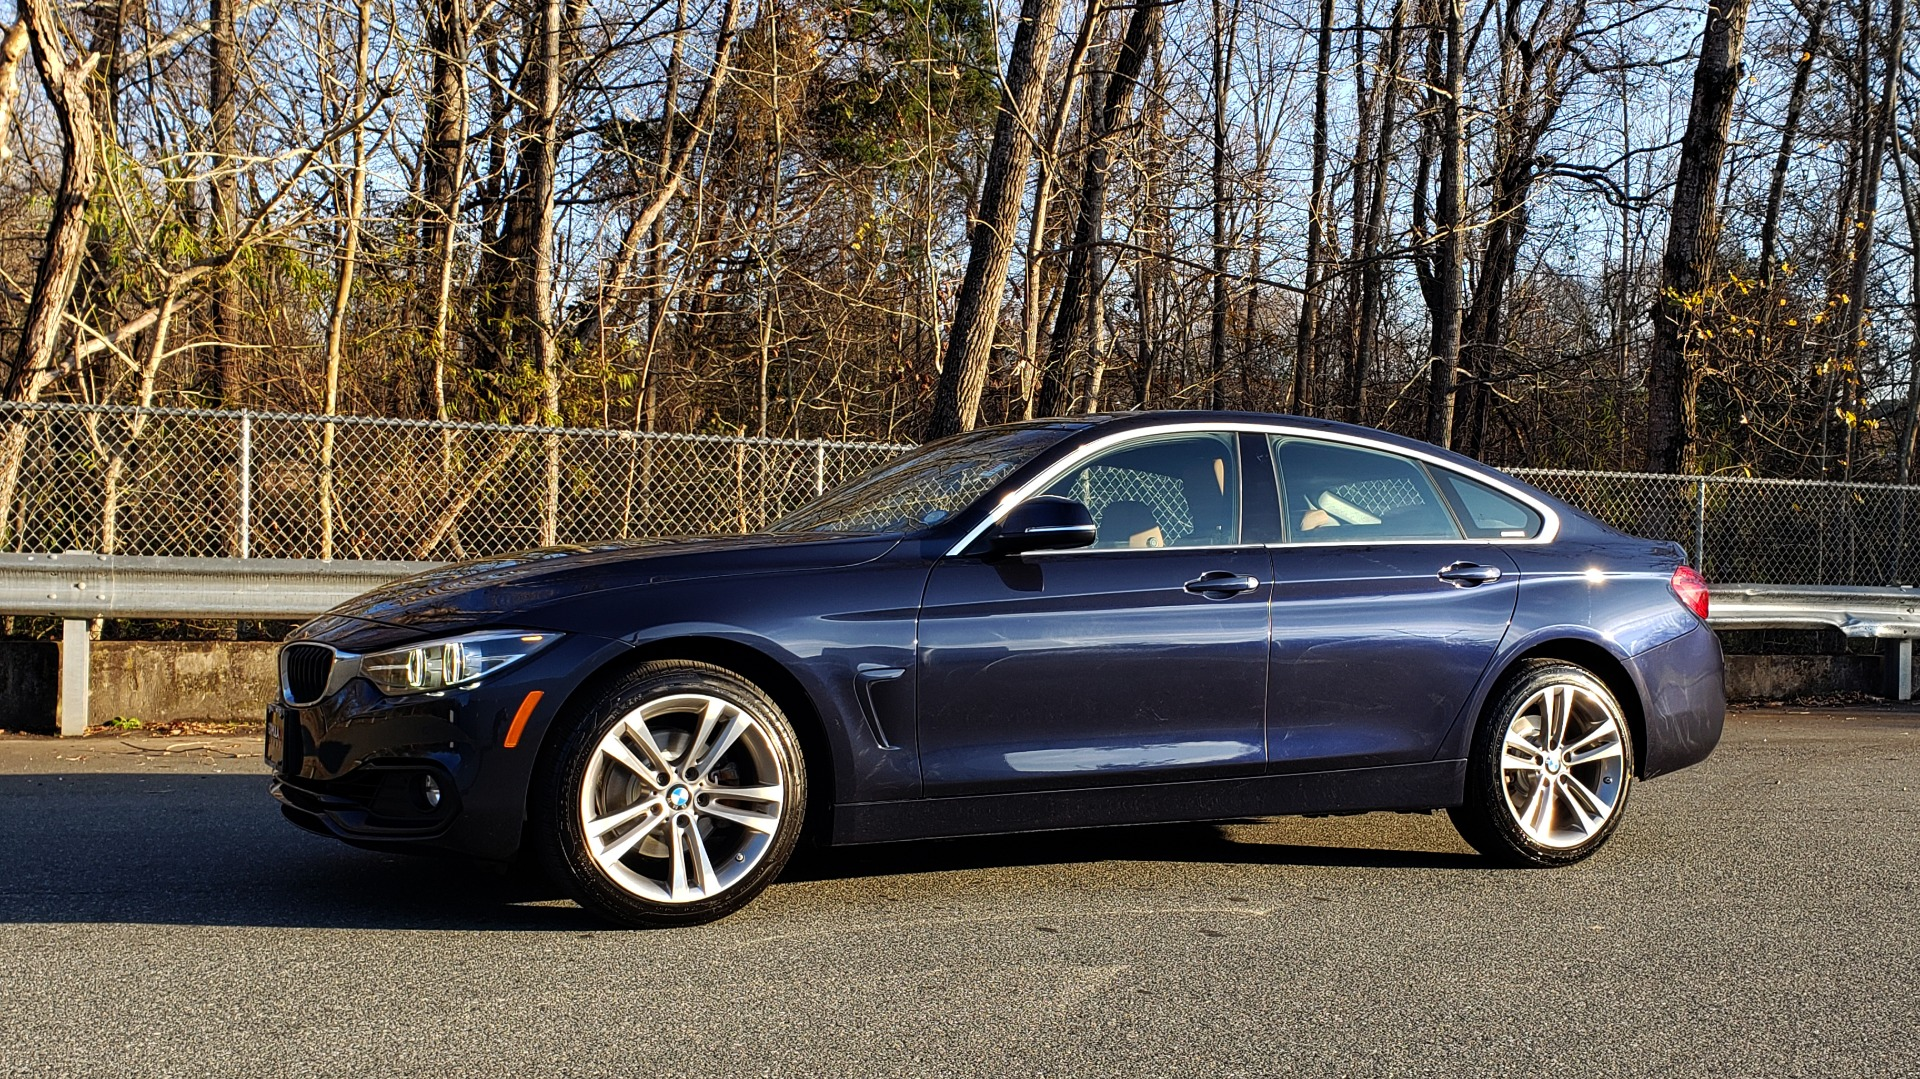 Used 2018 BMW 4 SERIES 430I XDRIVE PREMIUM / NAV / APPLE CAR PLAY / ESSENTIALS / HTD ST for sale Sold at Formula Imports in Charlotte NC 28227 2